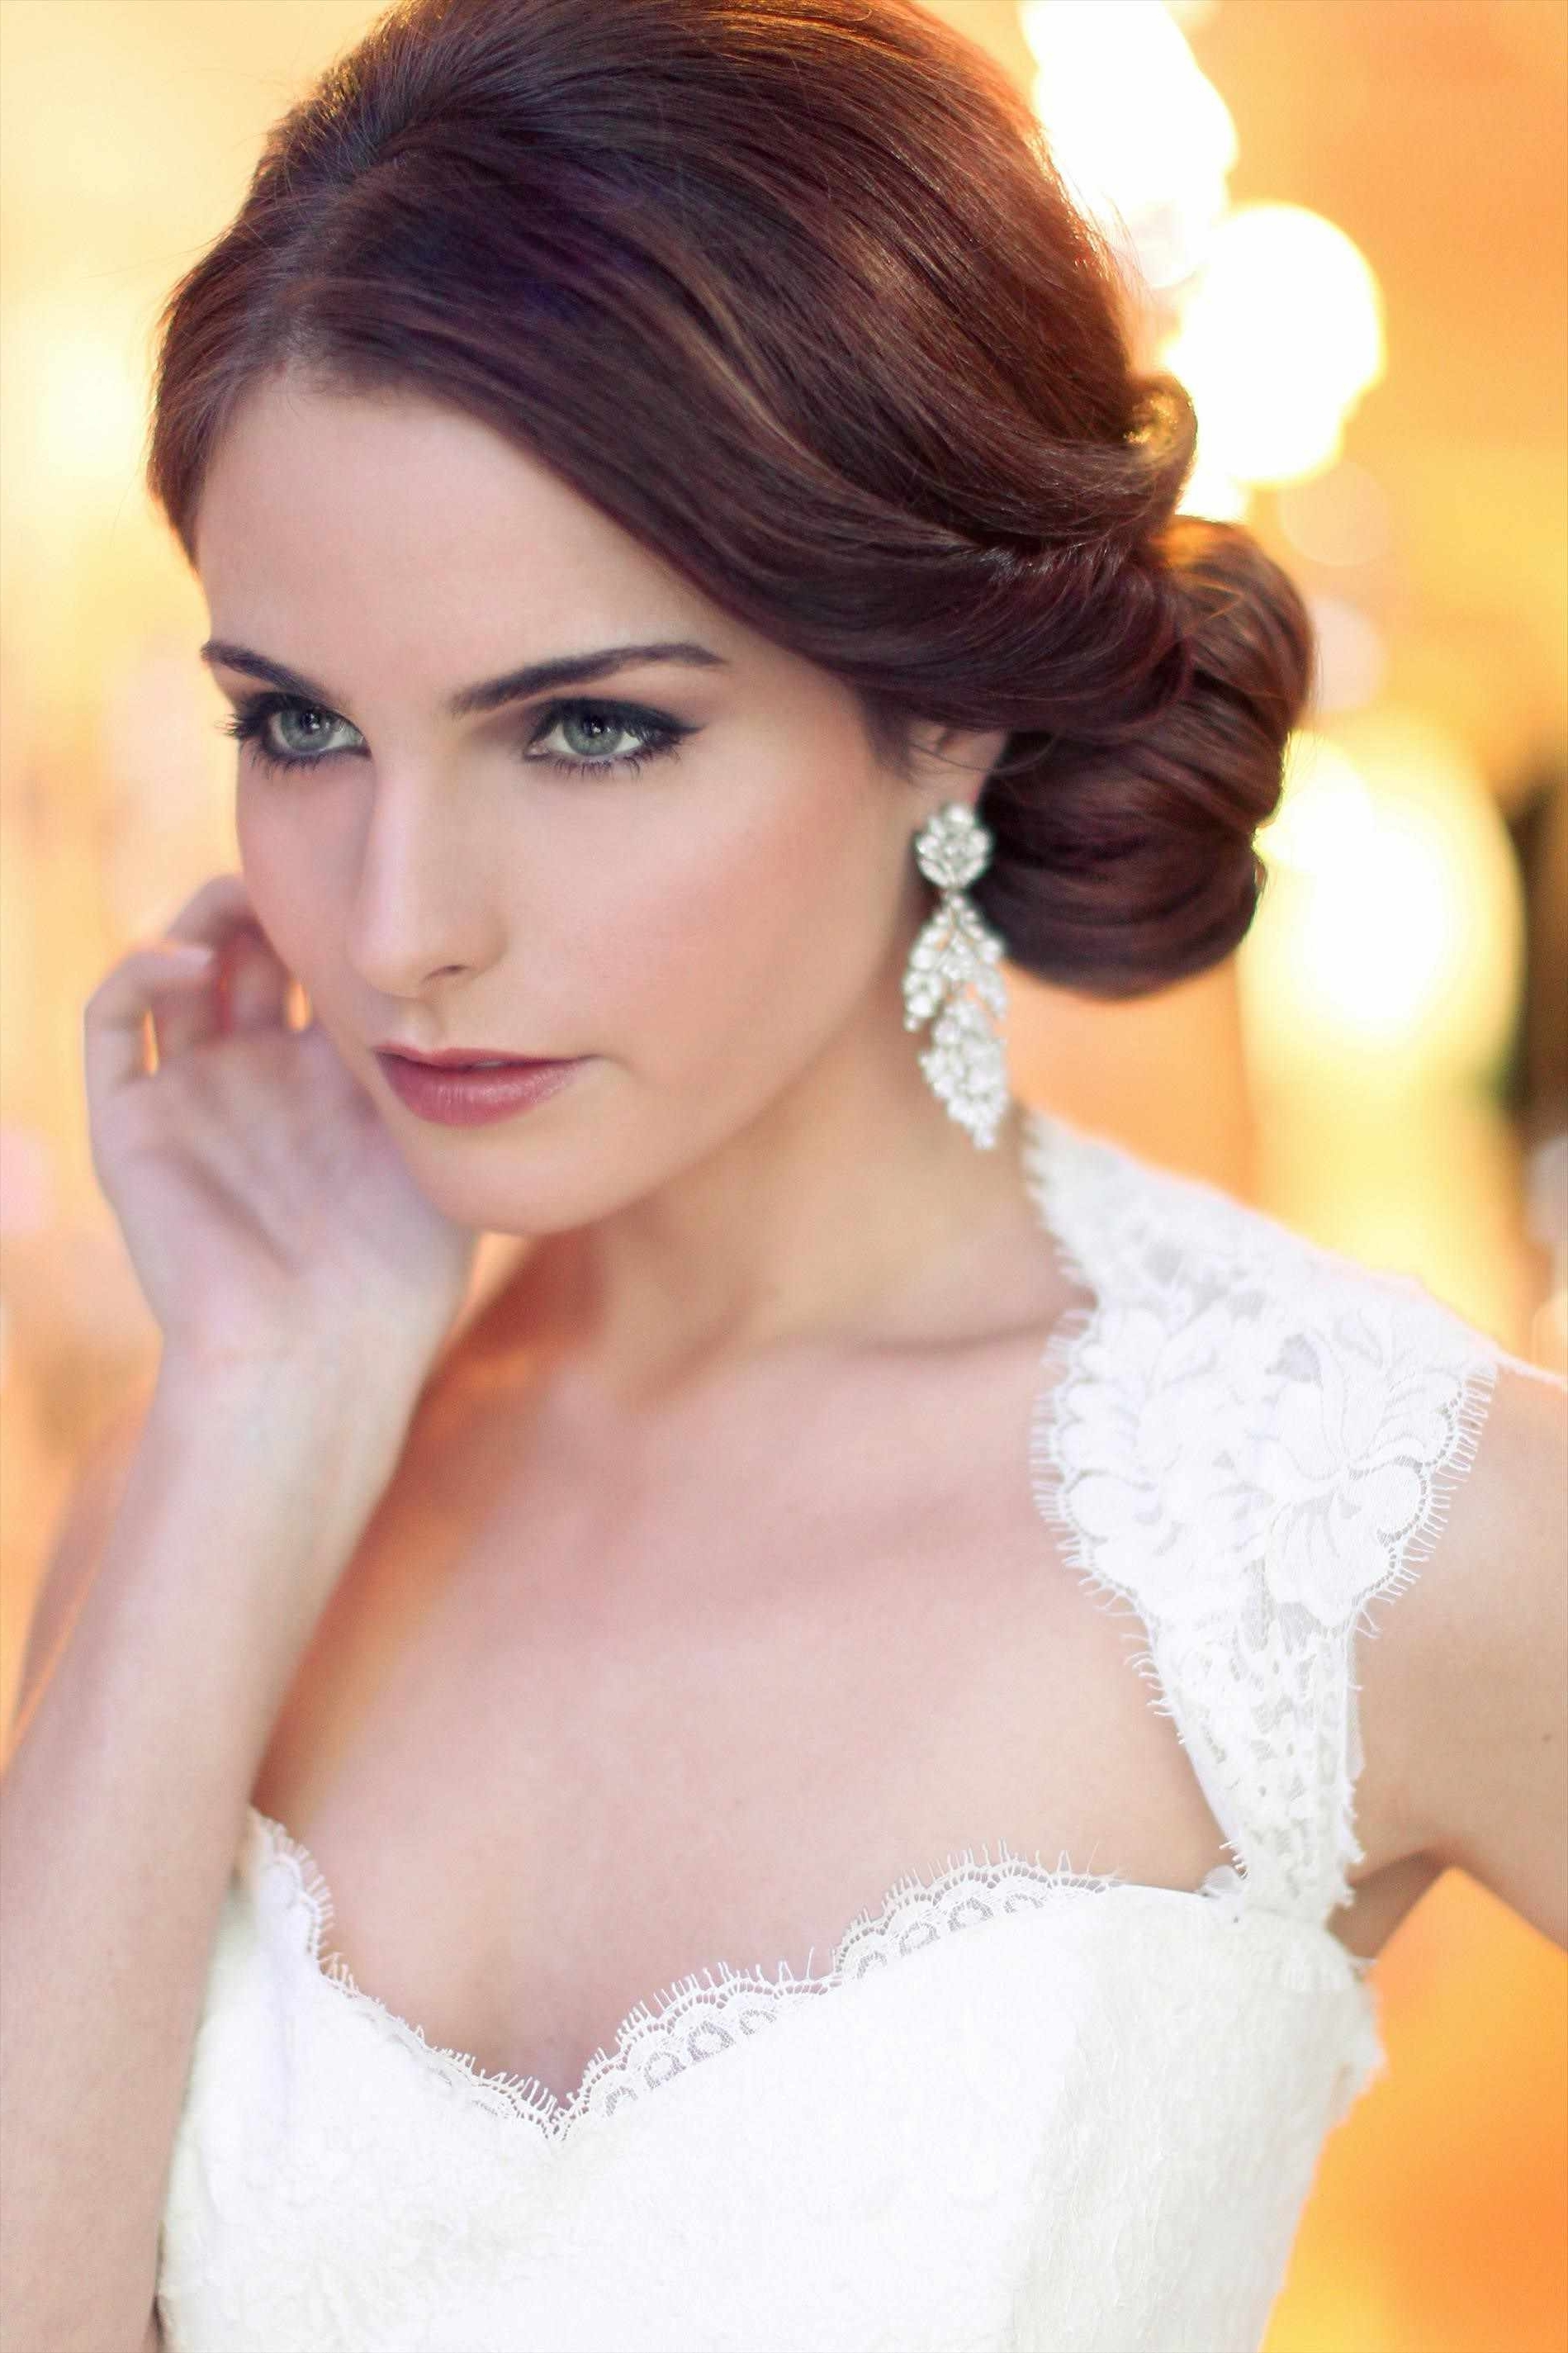 Adorable Hairstyle For Bride With Round Face In Hairstyles For Round Pertaining To Fashionable Wedding Hairstyles For Round Face (View 11 of 15)